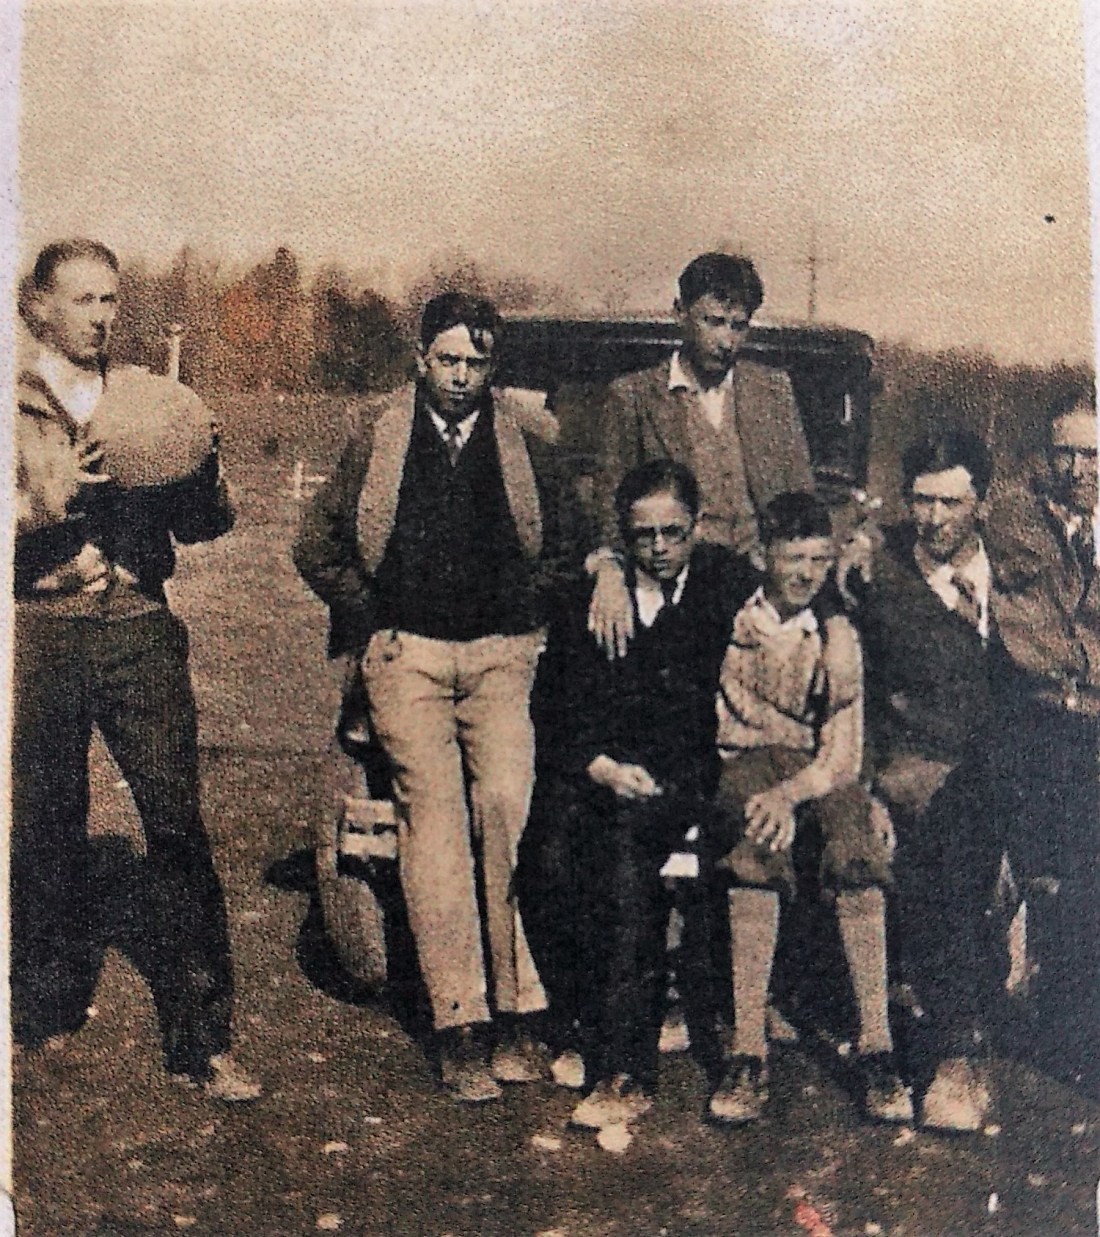 Bill Starkey, Carridon Grisso, Earl Starkey, Ronald Thomas, Loren Thomas, Roy Lemon, Donald Custer1929-1930